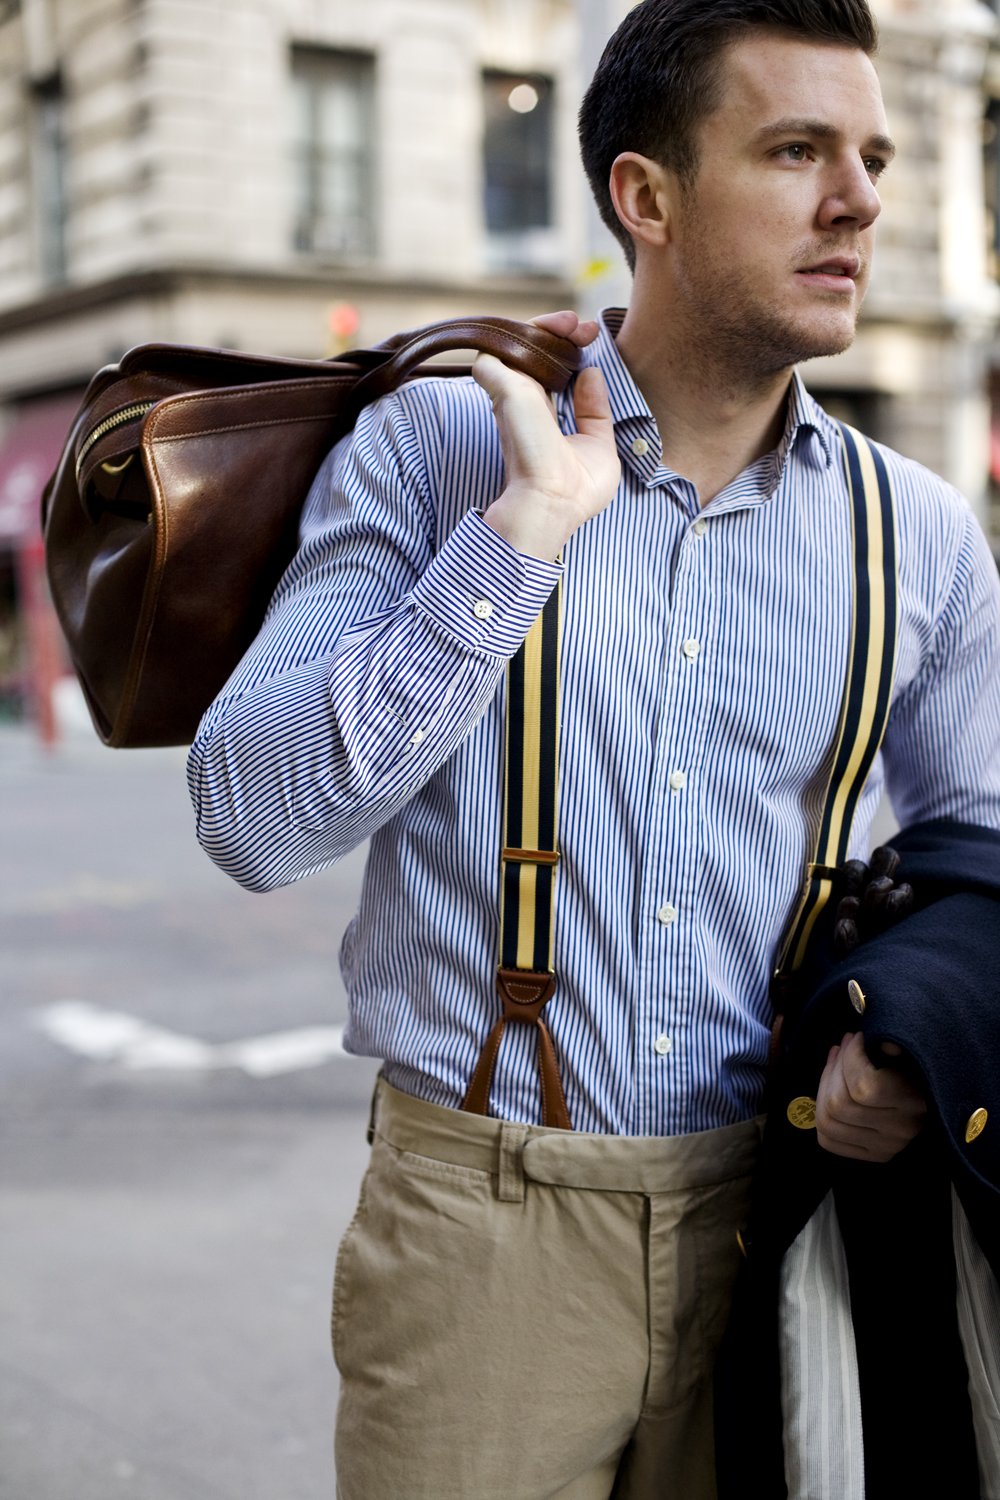 Find great deals on eBay for Mens Braces in Suspenders and Braces for Men. Shop with confidence.